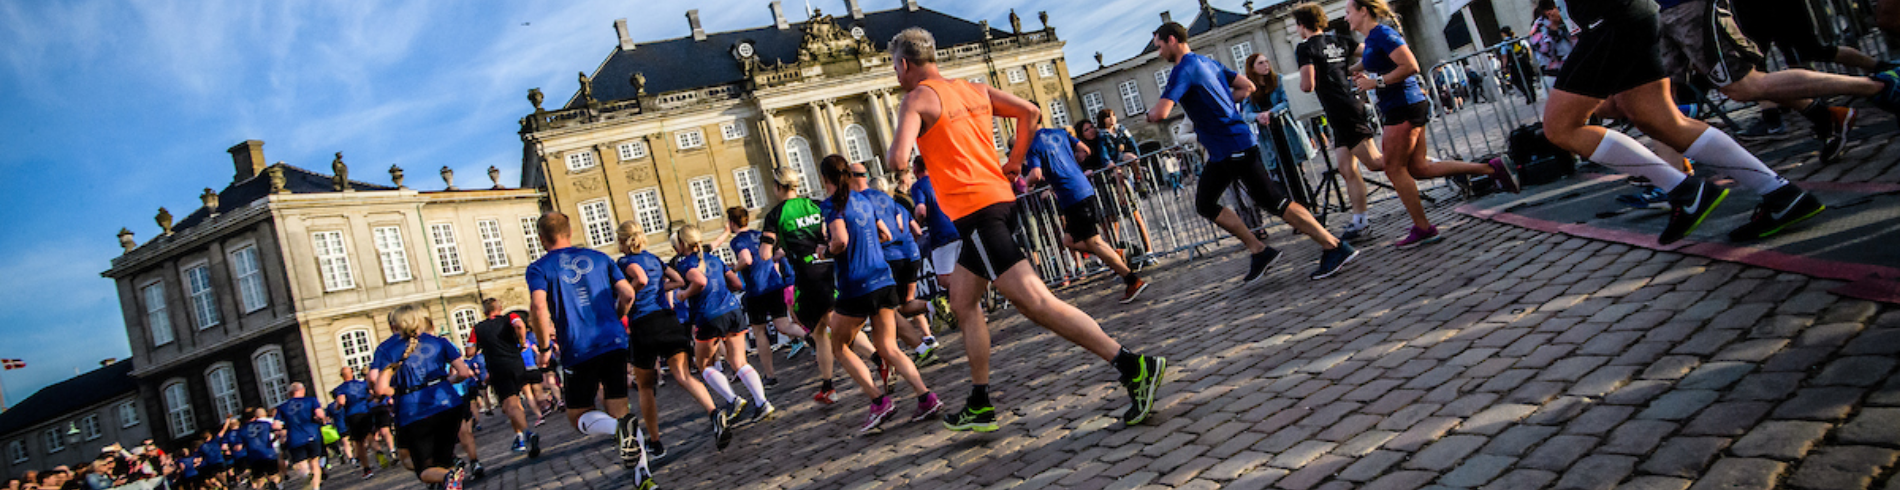 Royal Run - pressebilleder 2019 cover image